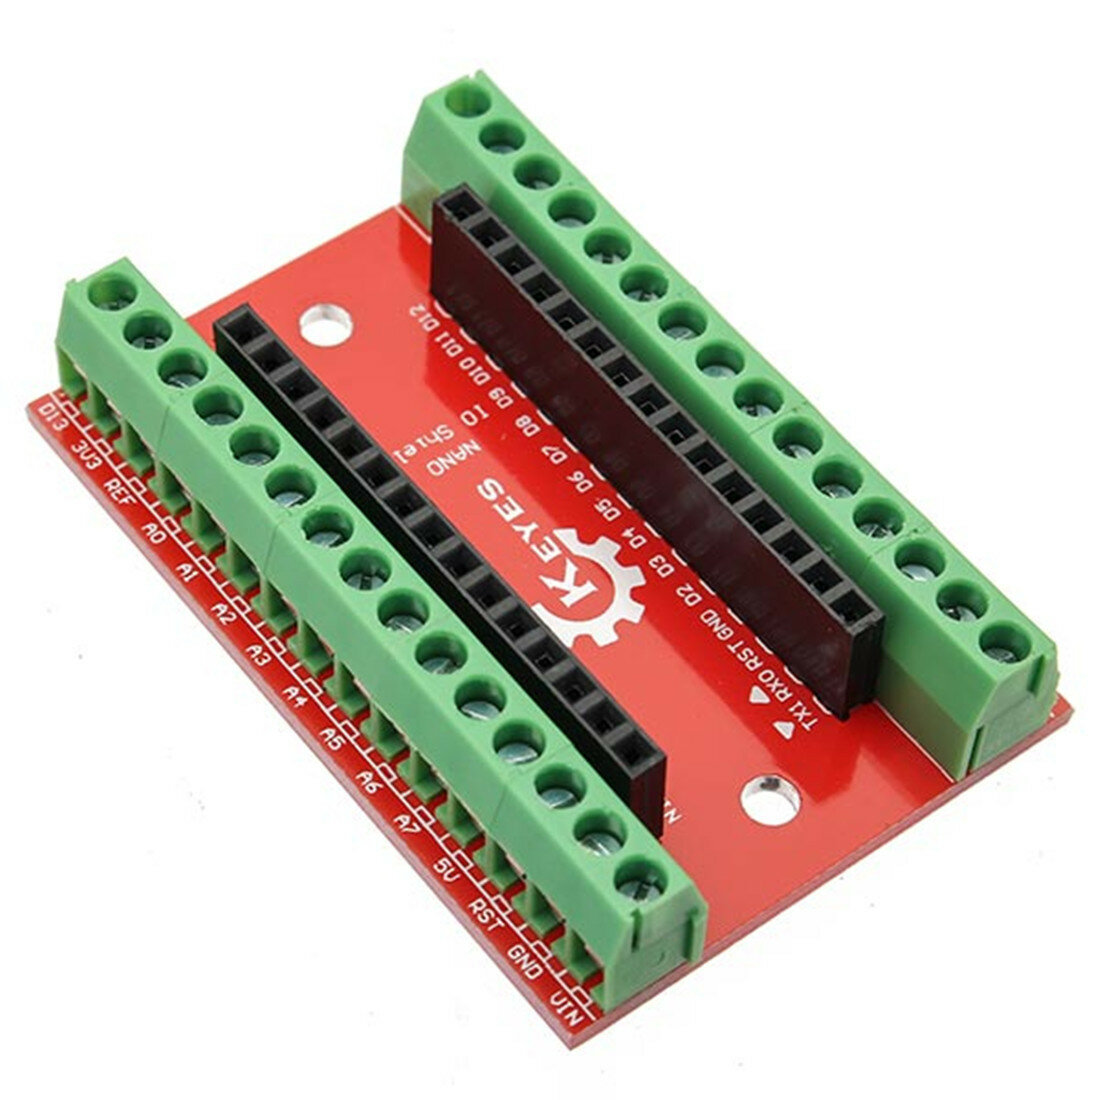 NANO IO Shield Expansion Board Geekcreit for Arduino - products that work with official Arduino boards